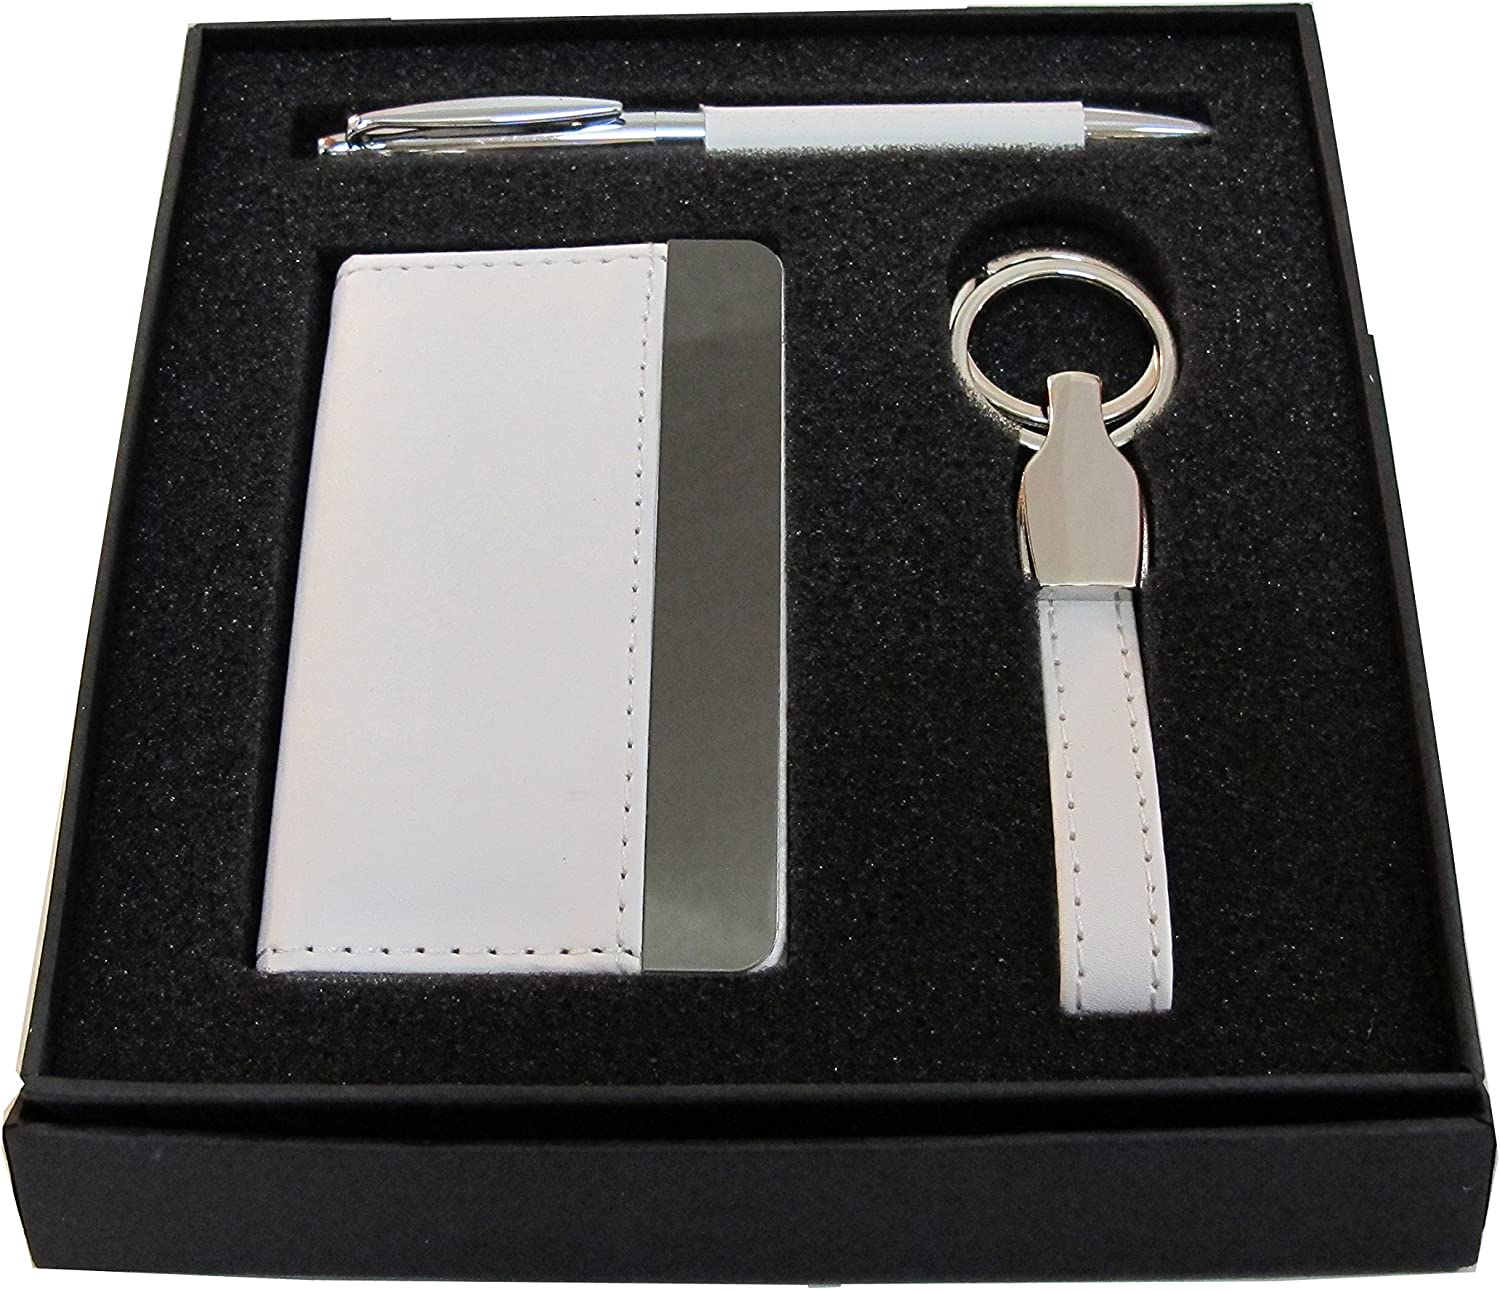 Silver Details about  /Business Card Holder and Key Chain Gift Set .